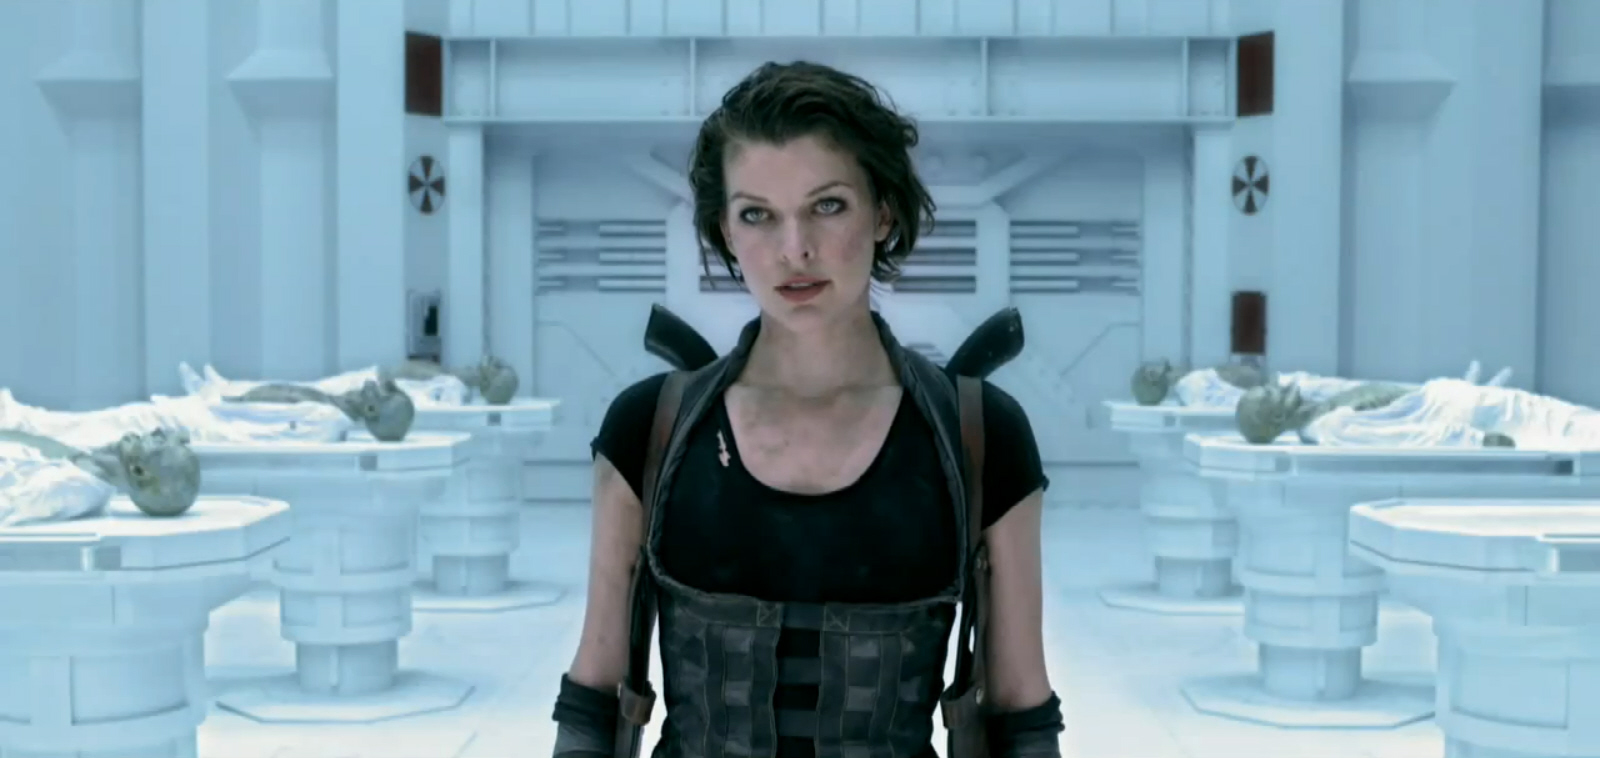 Resident Evil 5 Movie Release Date Announced Video Games Blogger